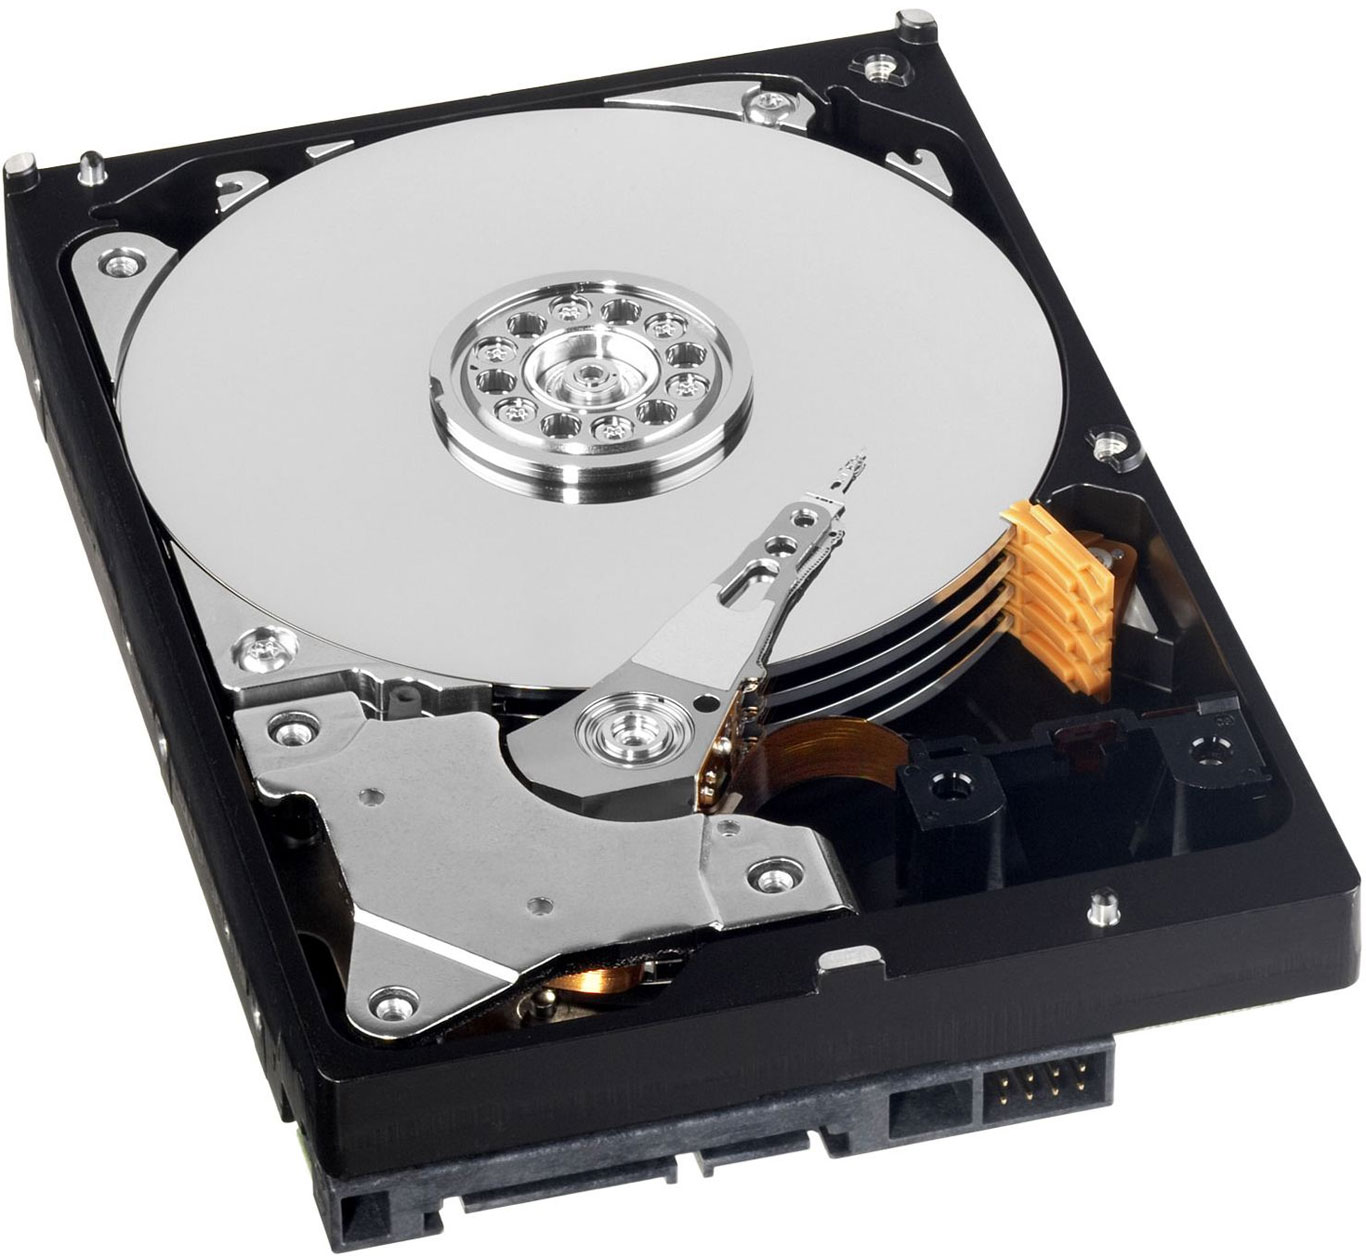 PC Sata 750GB HDD